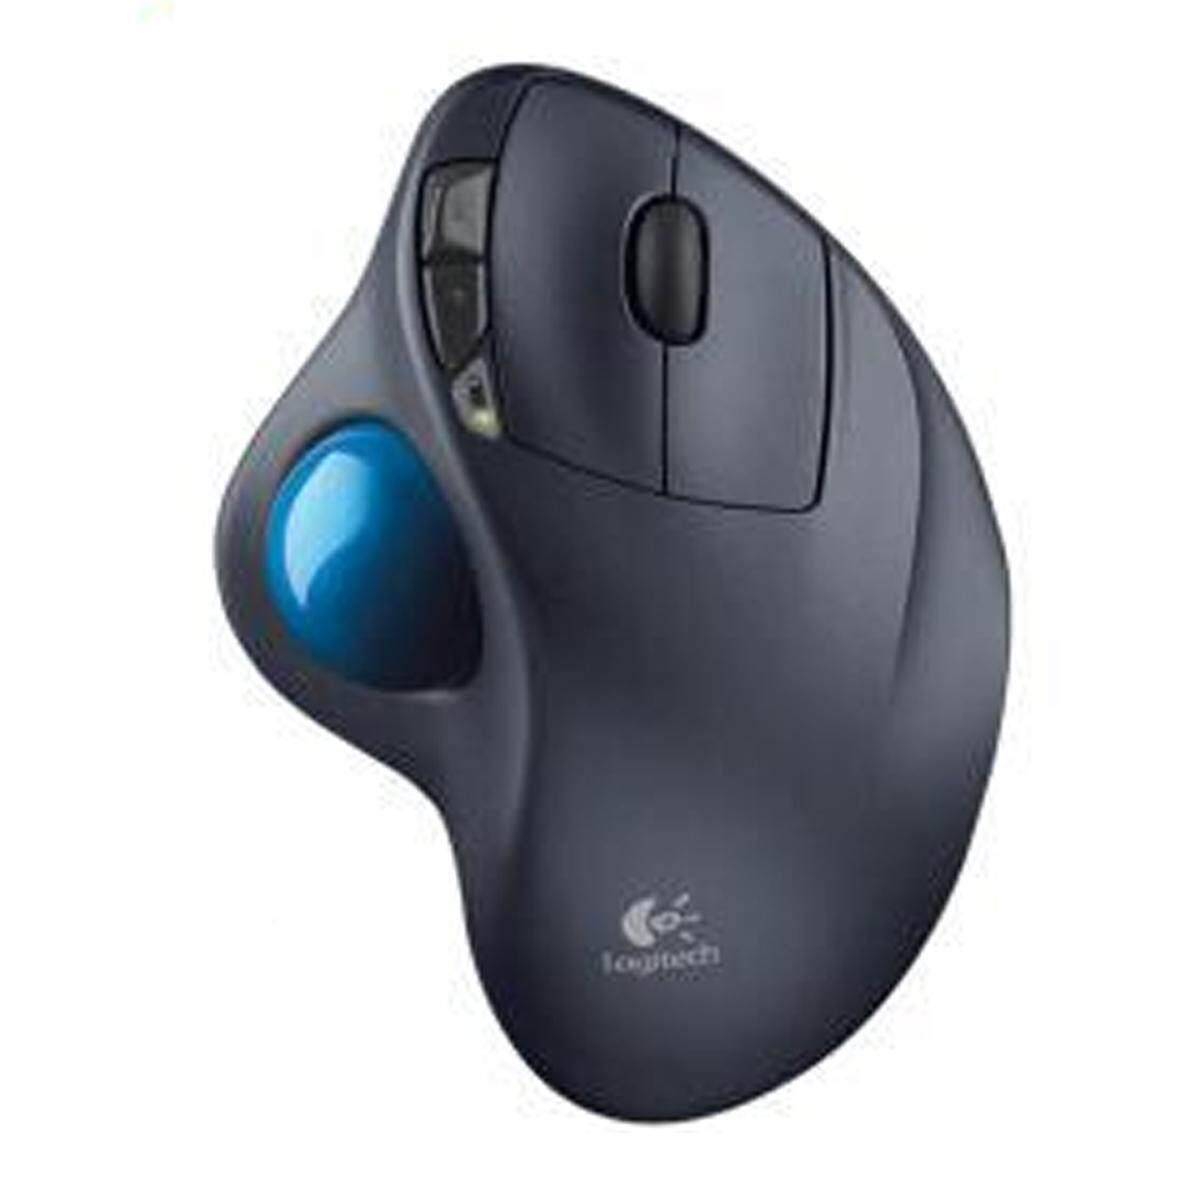 Logitech M570 2.4GHz Wireless Optical Trackball Ergonomic Gaming Mouse for Windows 10/8/7 Mac OS